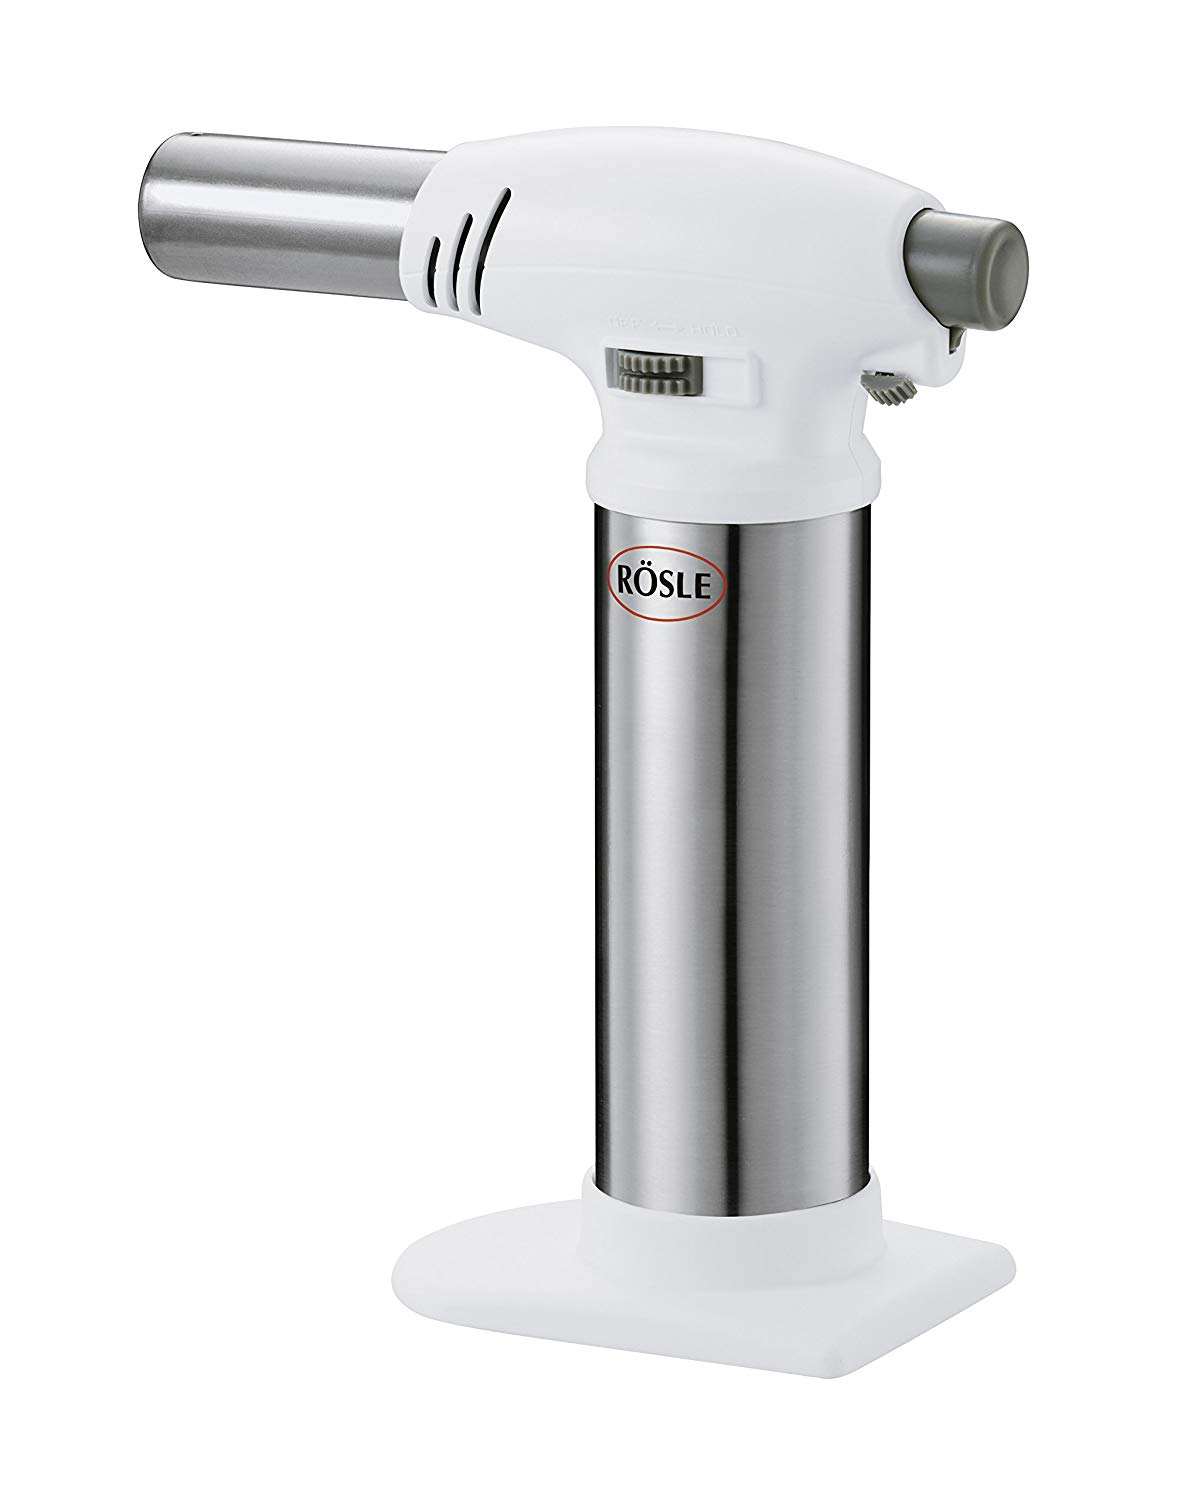 Rösle crème brulee butane/propane adjustable kitchen torch